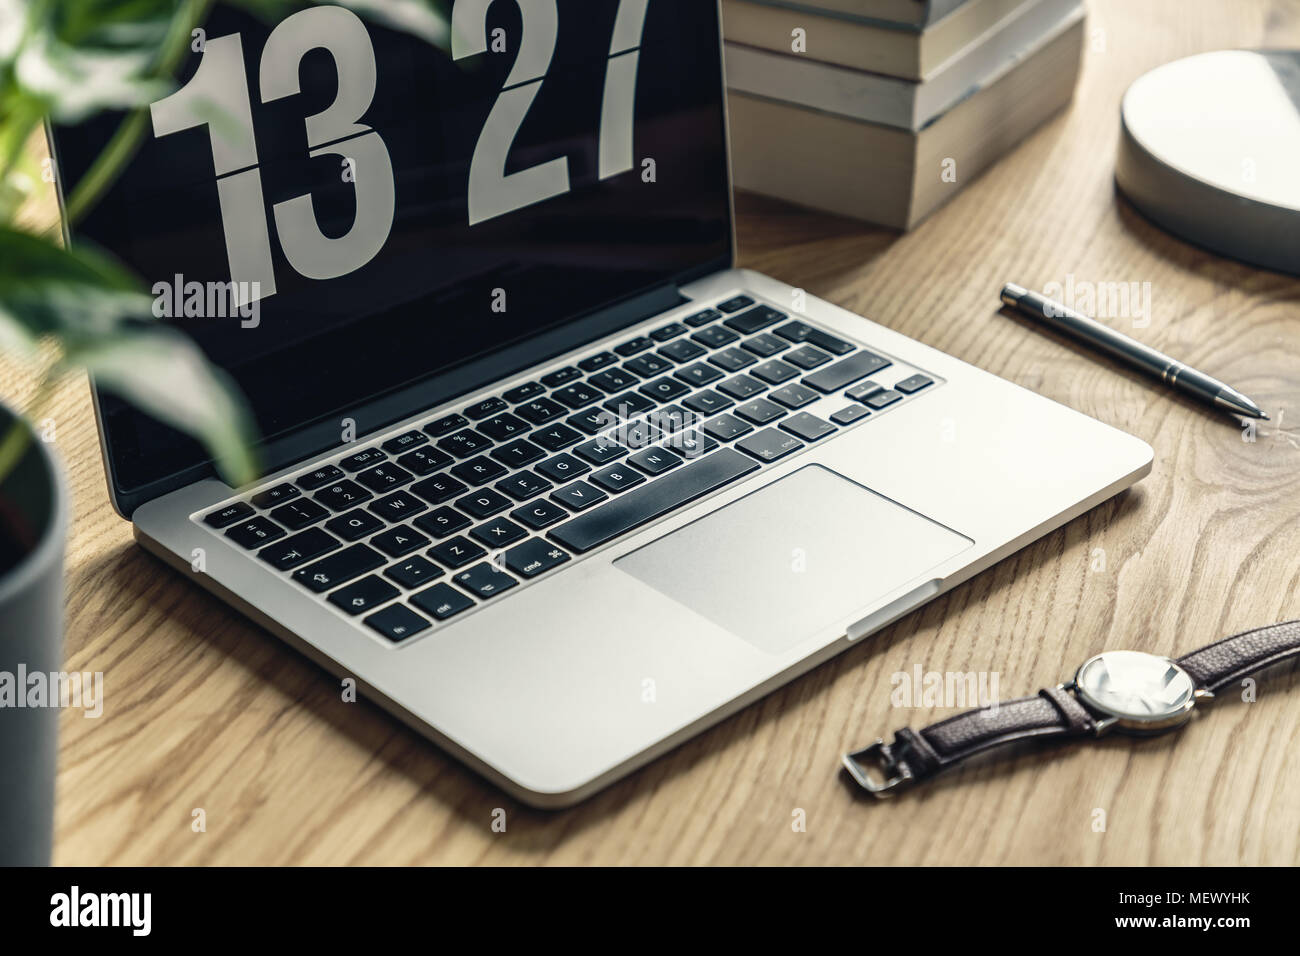 Close-up of a laptop showing time, watch, pen and books on a wooden desk Stock Photo